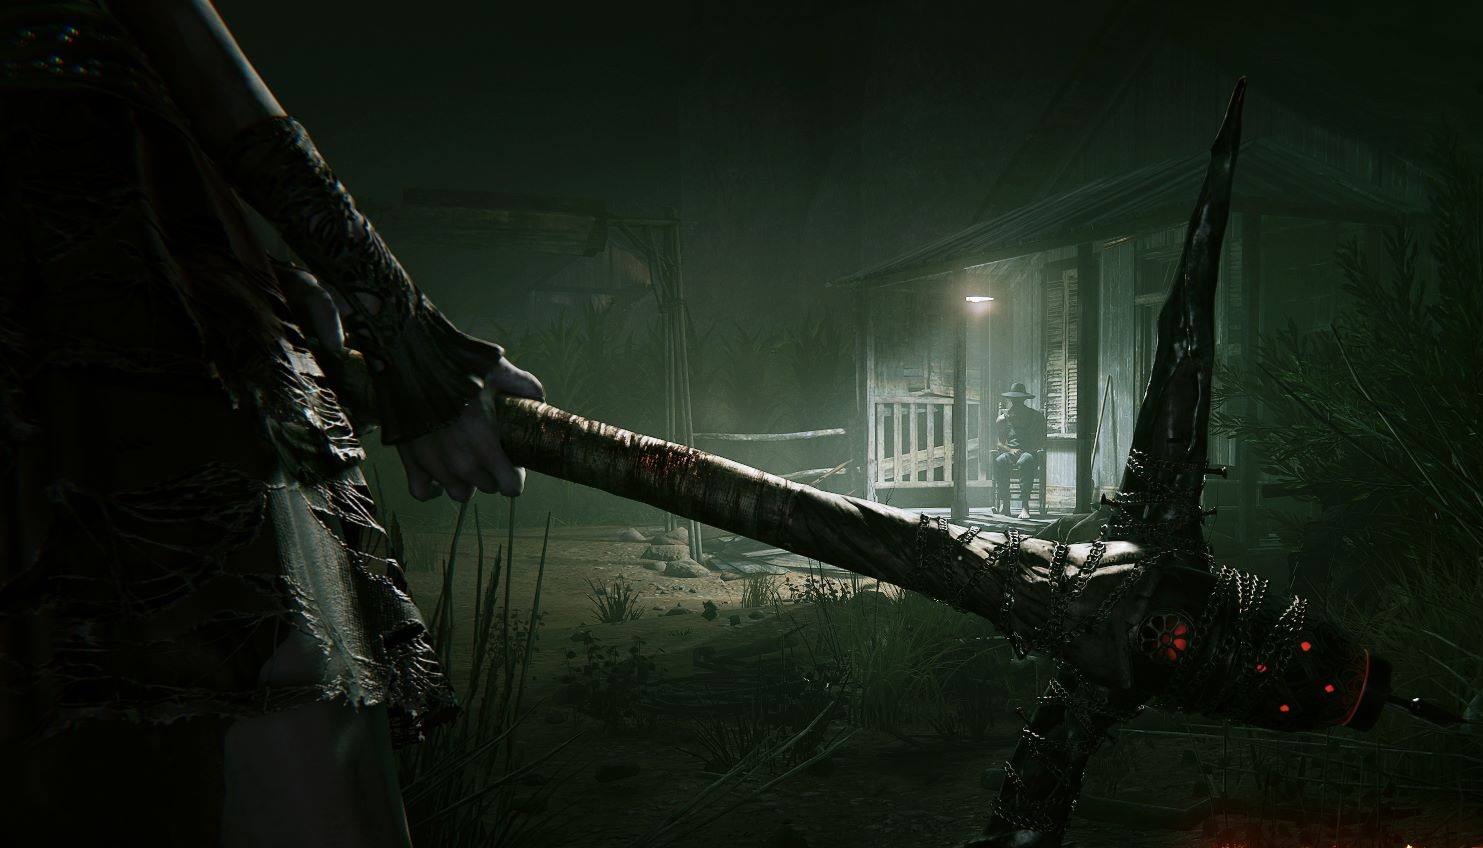 Outlast 2 is a terrifying mishmash of horror tropes and crotch stabbing